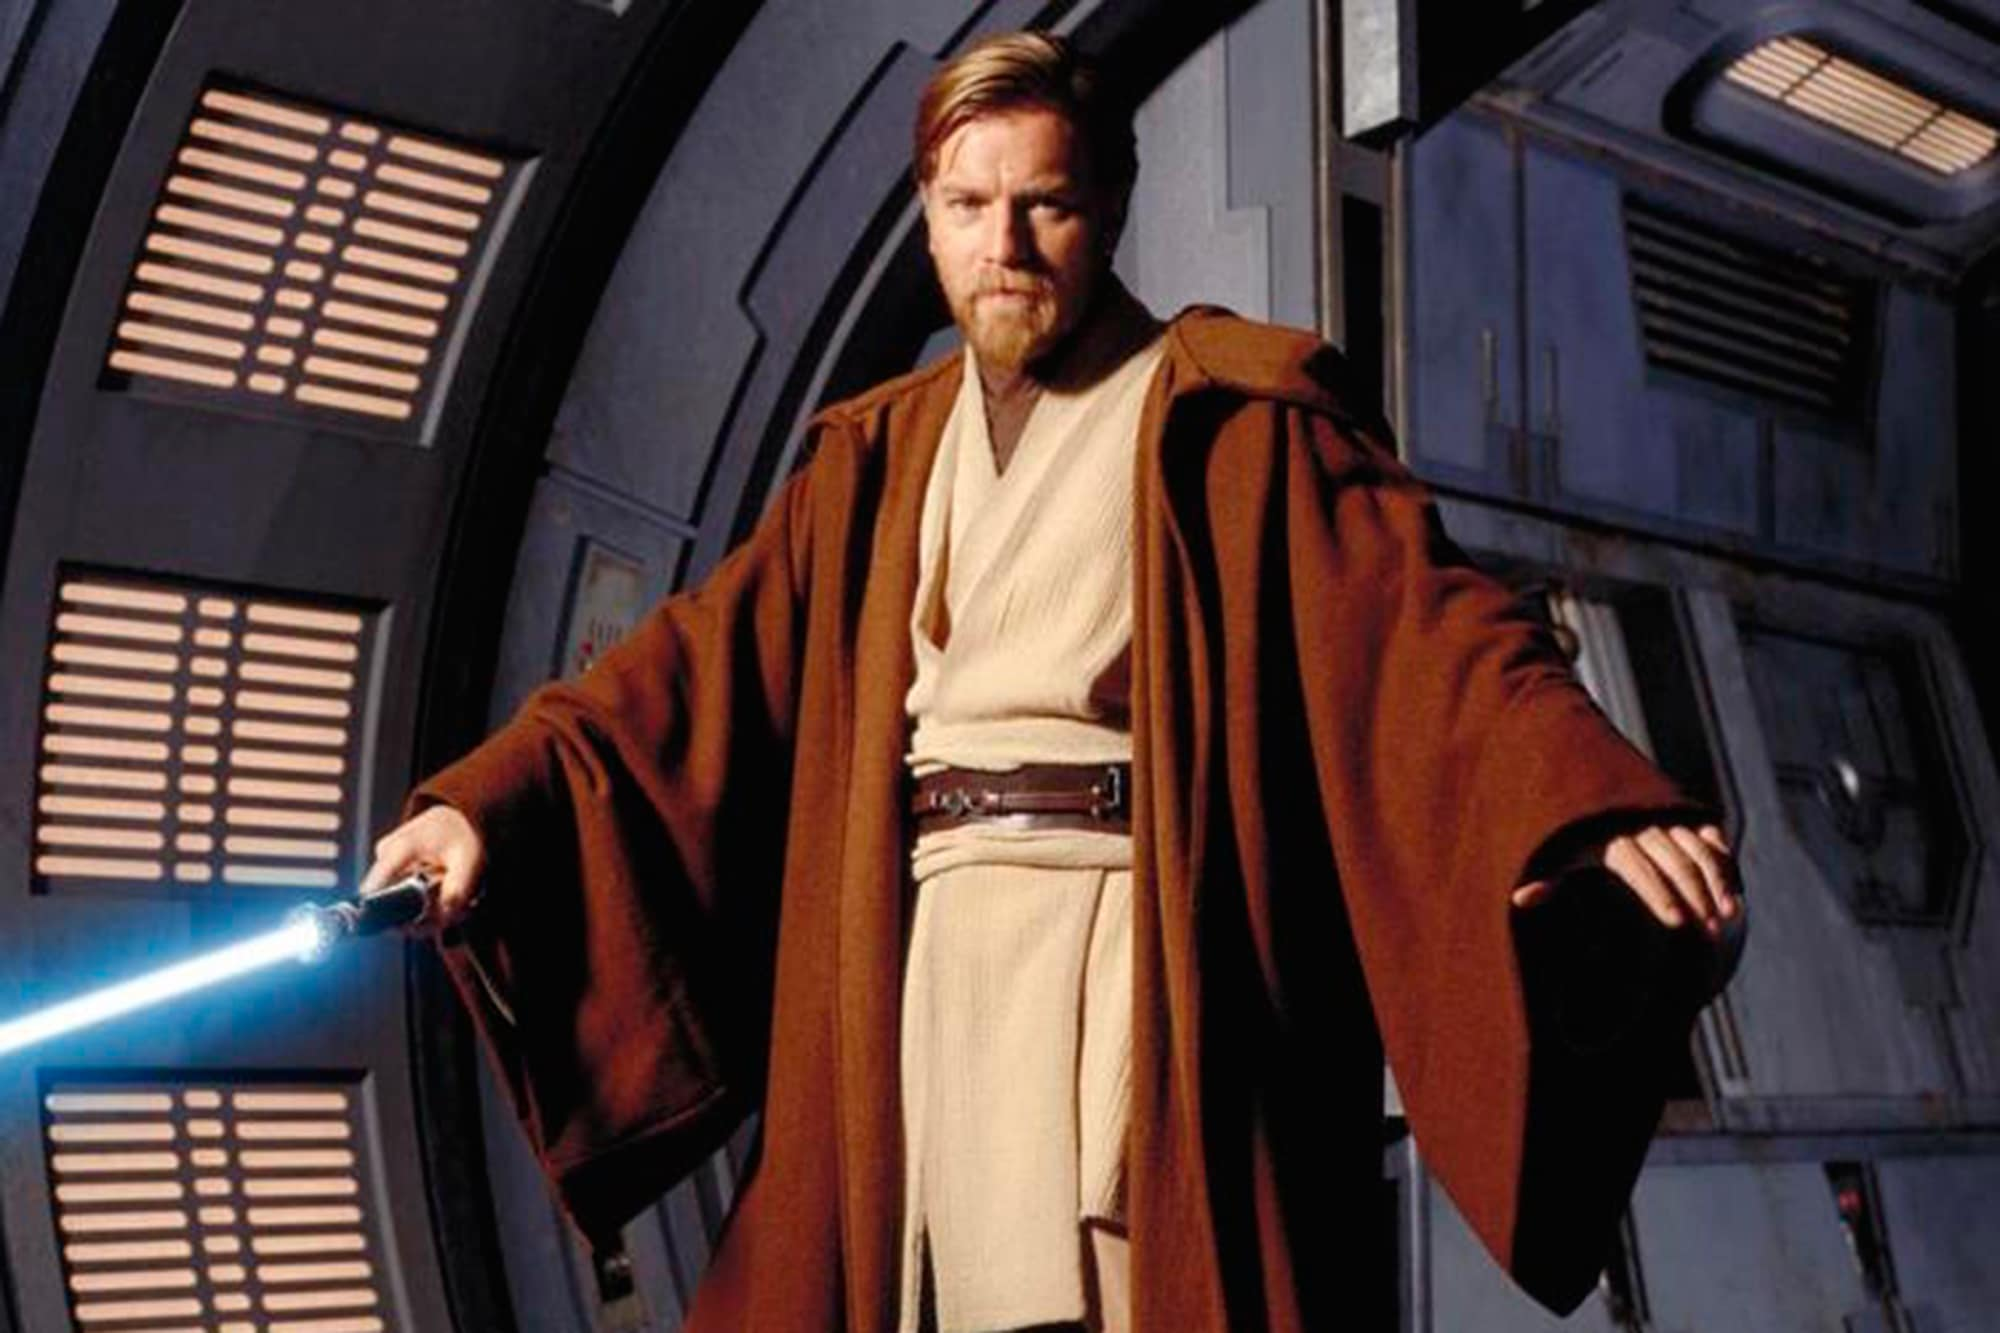 A new hope for Obi-Wan movie